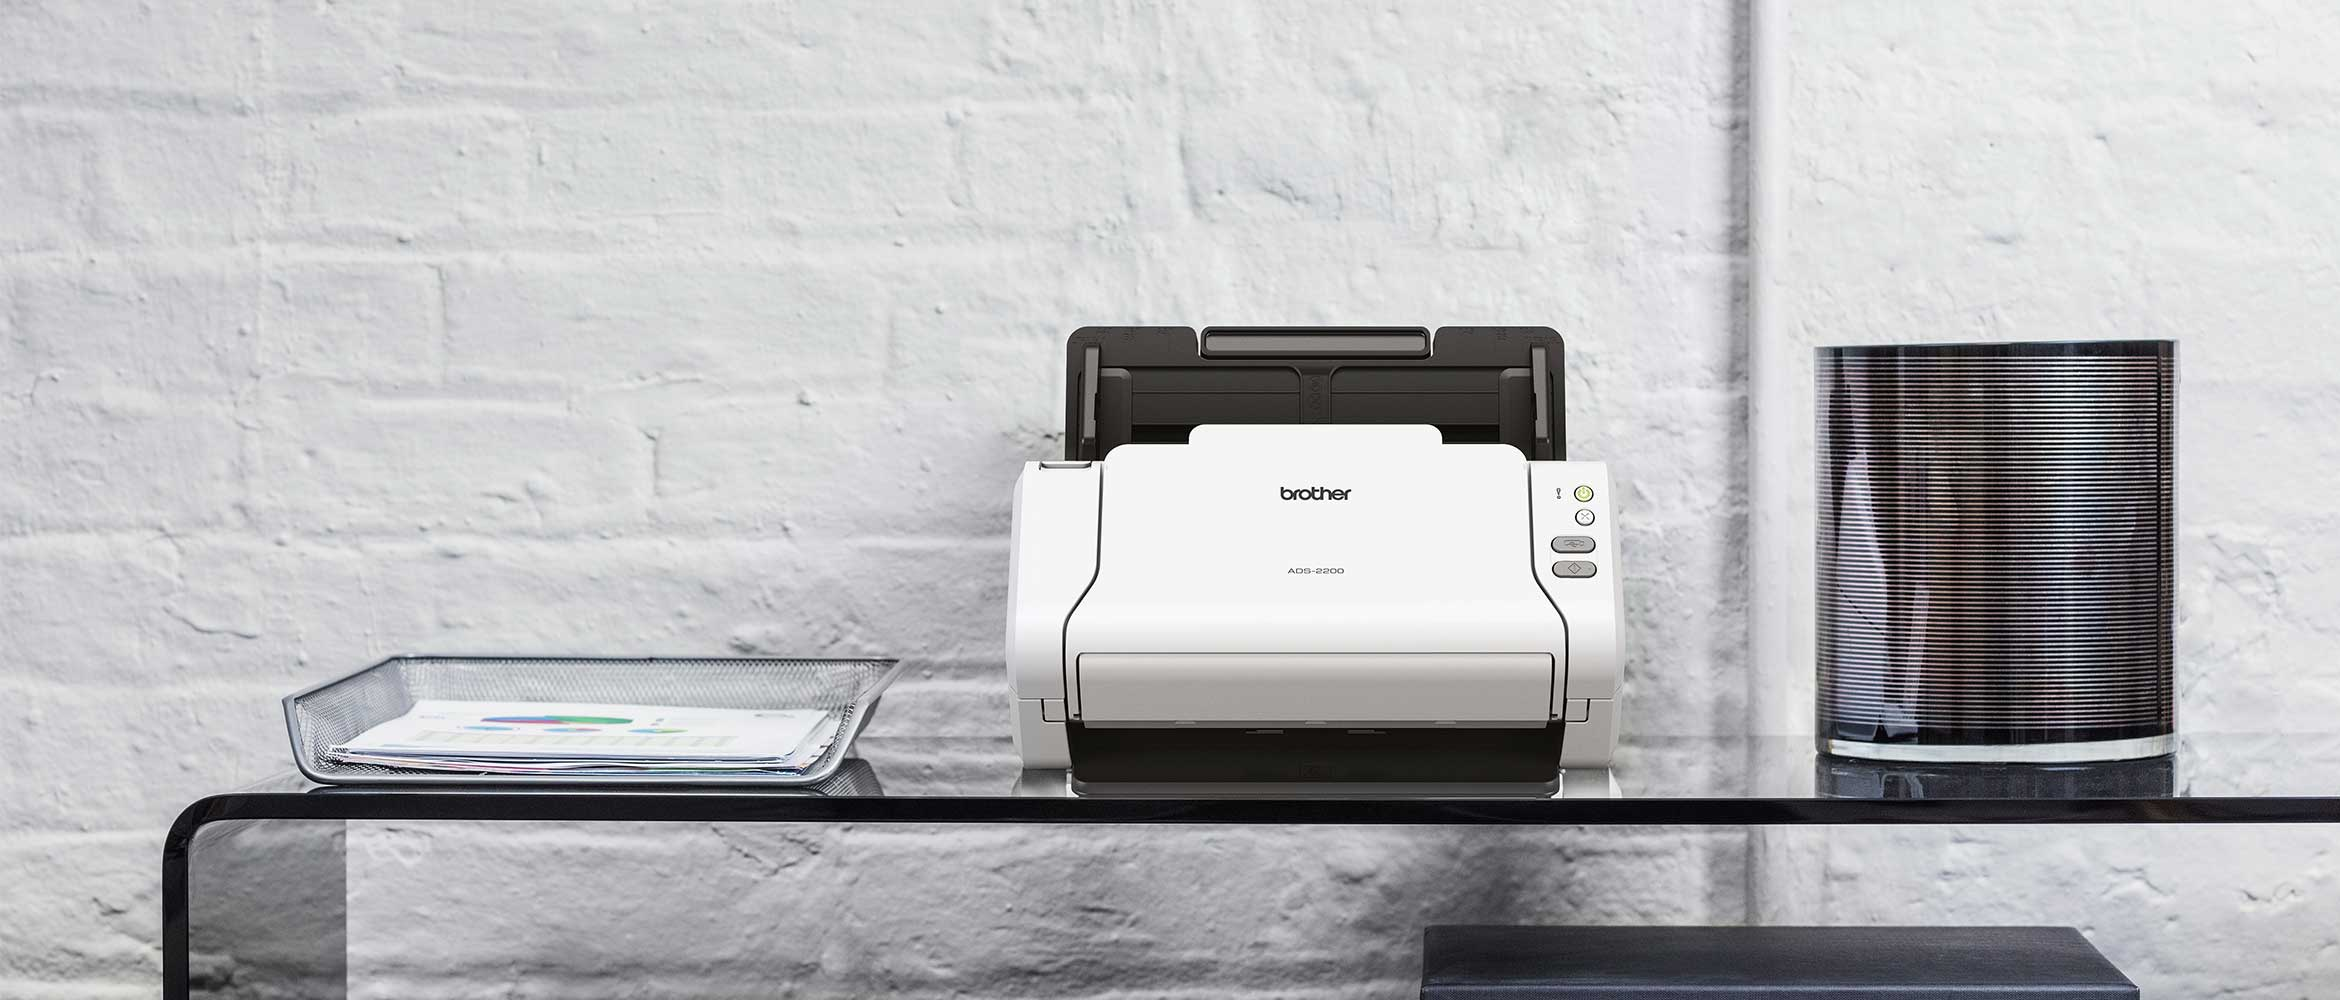 Genuine Brother document scanner on a desk